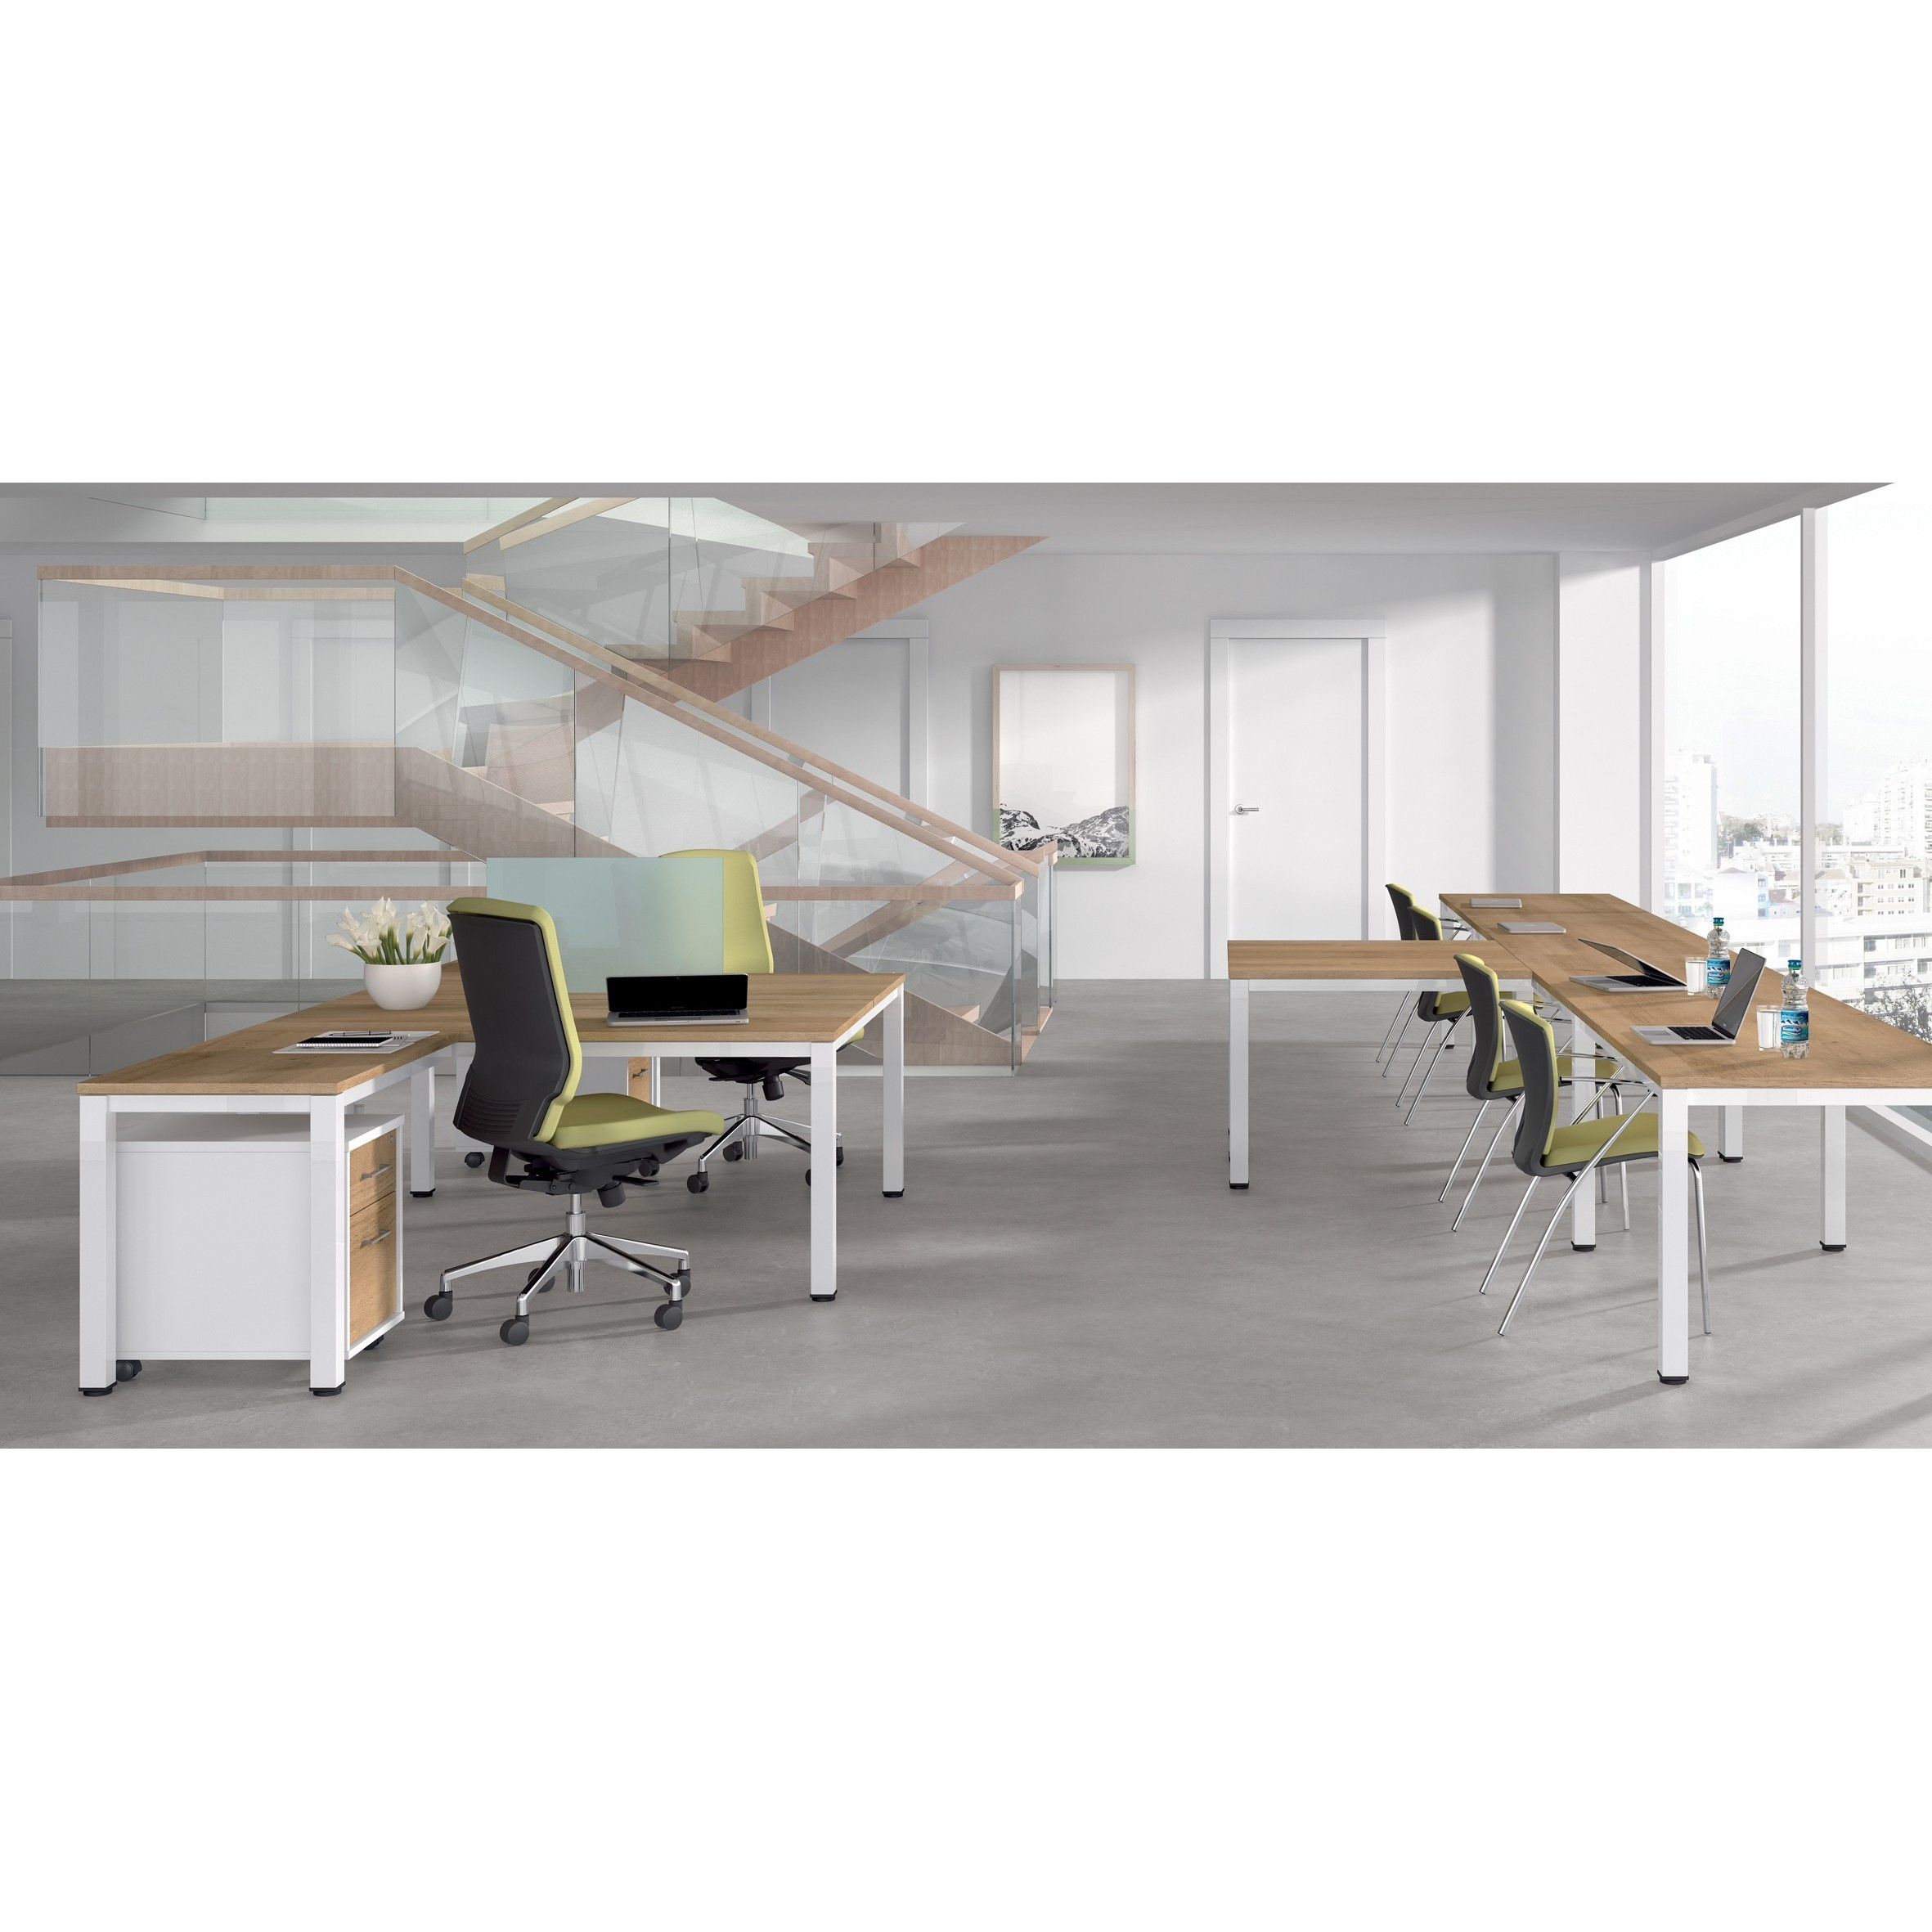 TABLE OFFICE 'S EXECUTIVE SERIES 160X80 ALUMINUM/WHITE